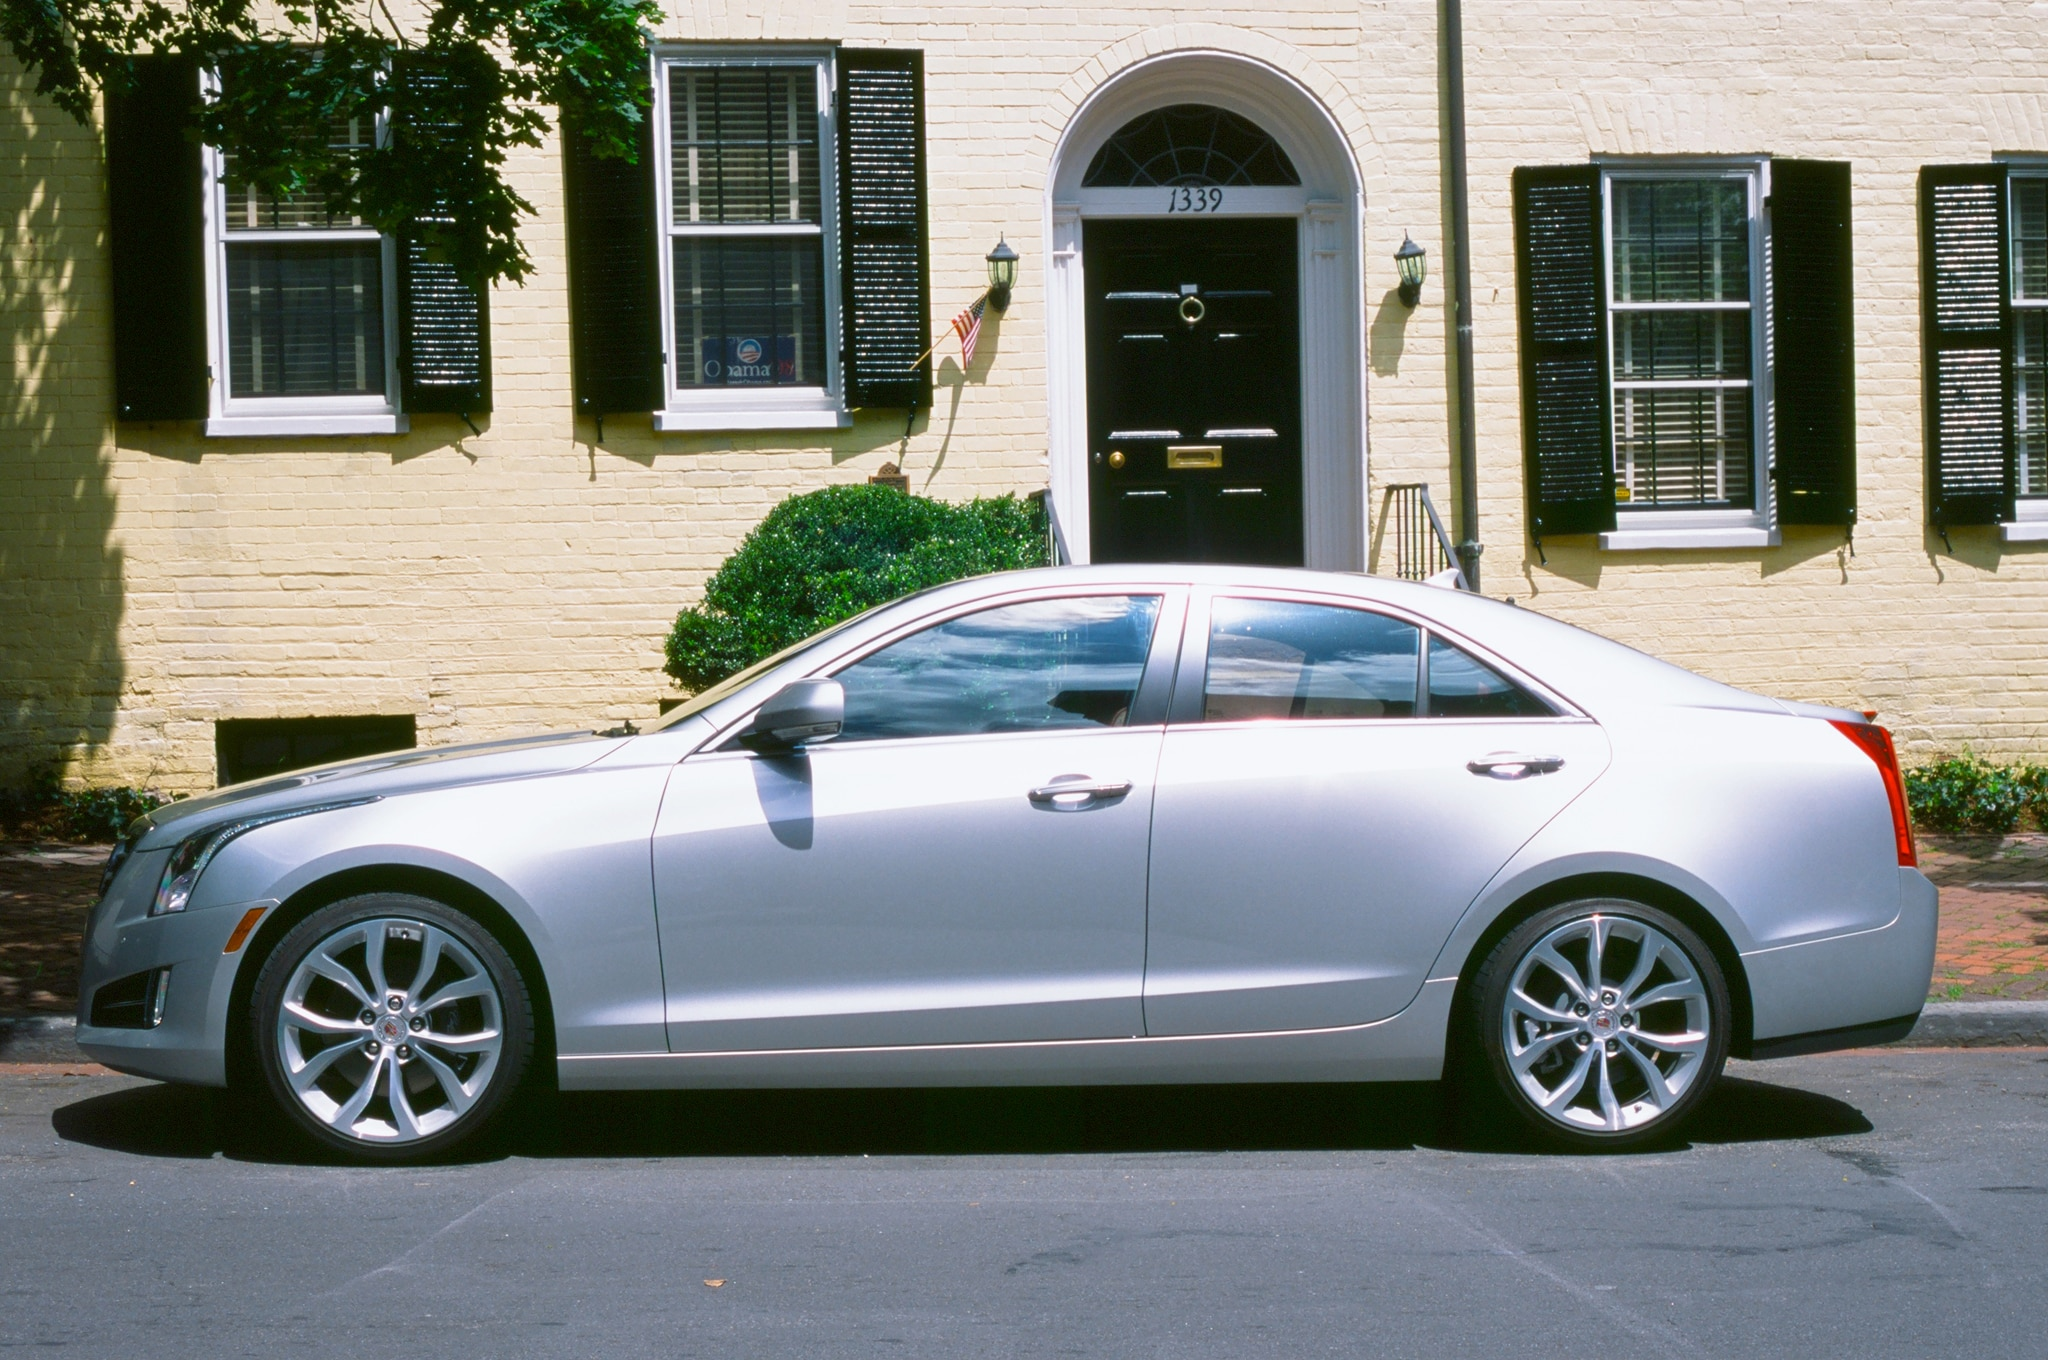 2013 cadillac ats four seasons update april 2014. Black Bedroom Furniture Sets. Home Design Ideas